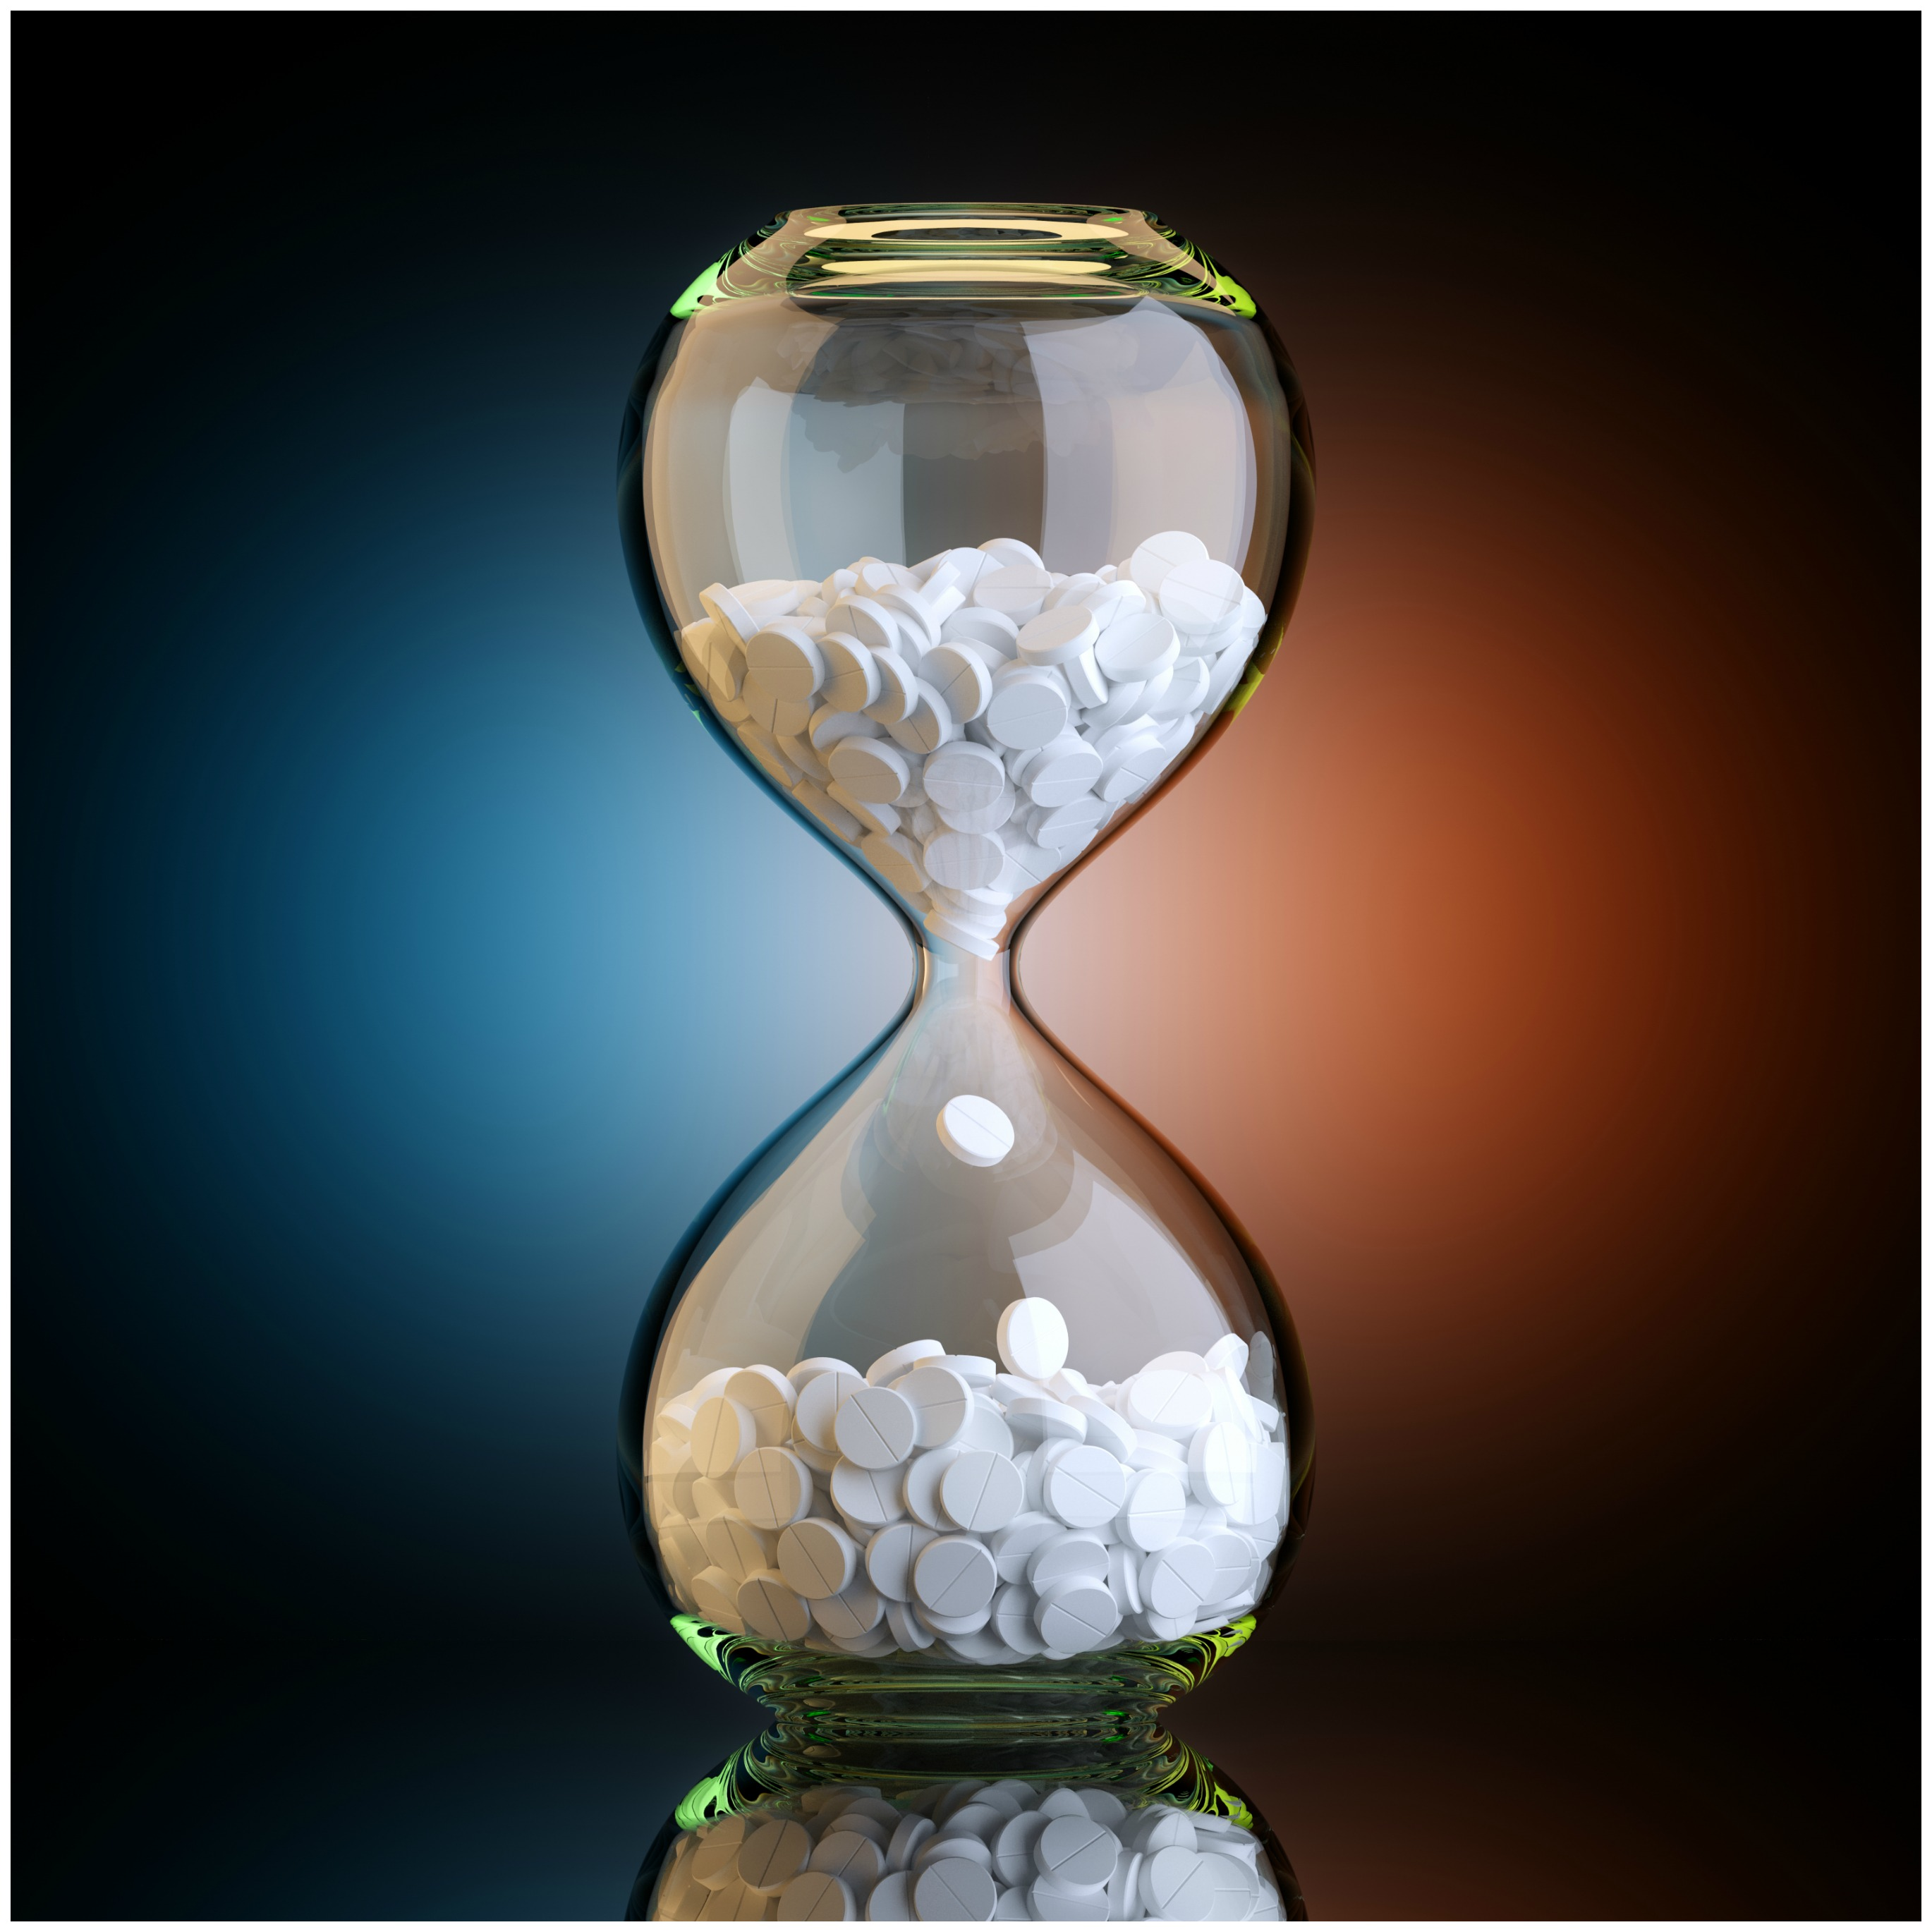 Clear hourglass that is filled with magnesium tablets falling from the top to the bottom. Magnesium leads to better sleep.